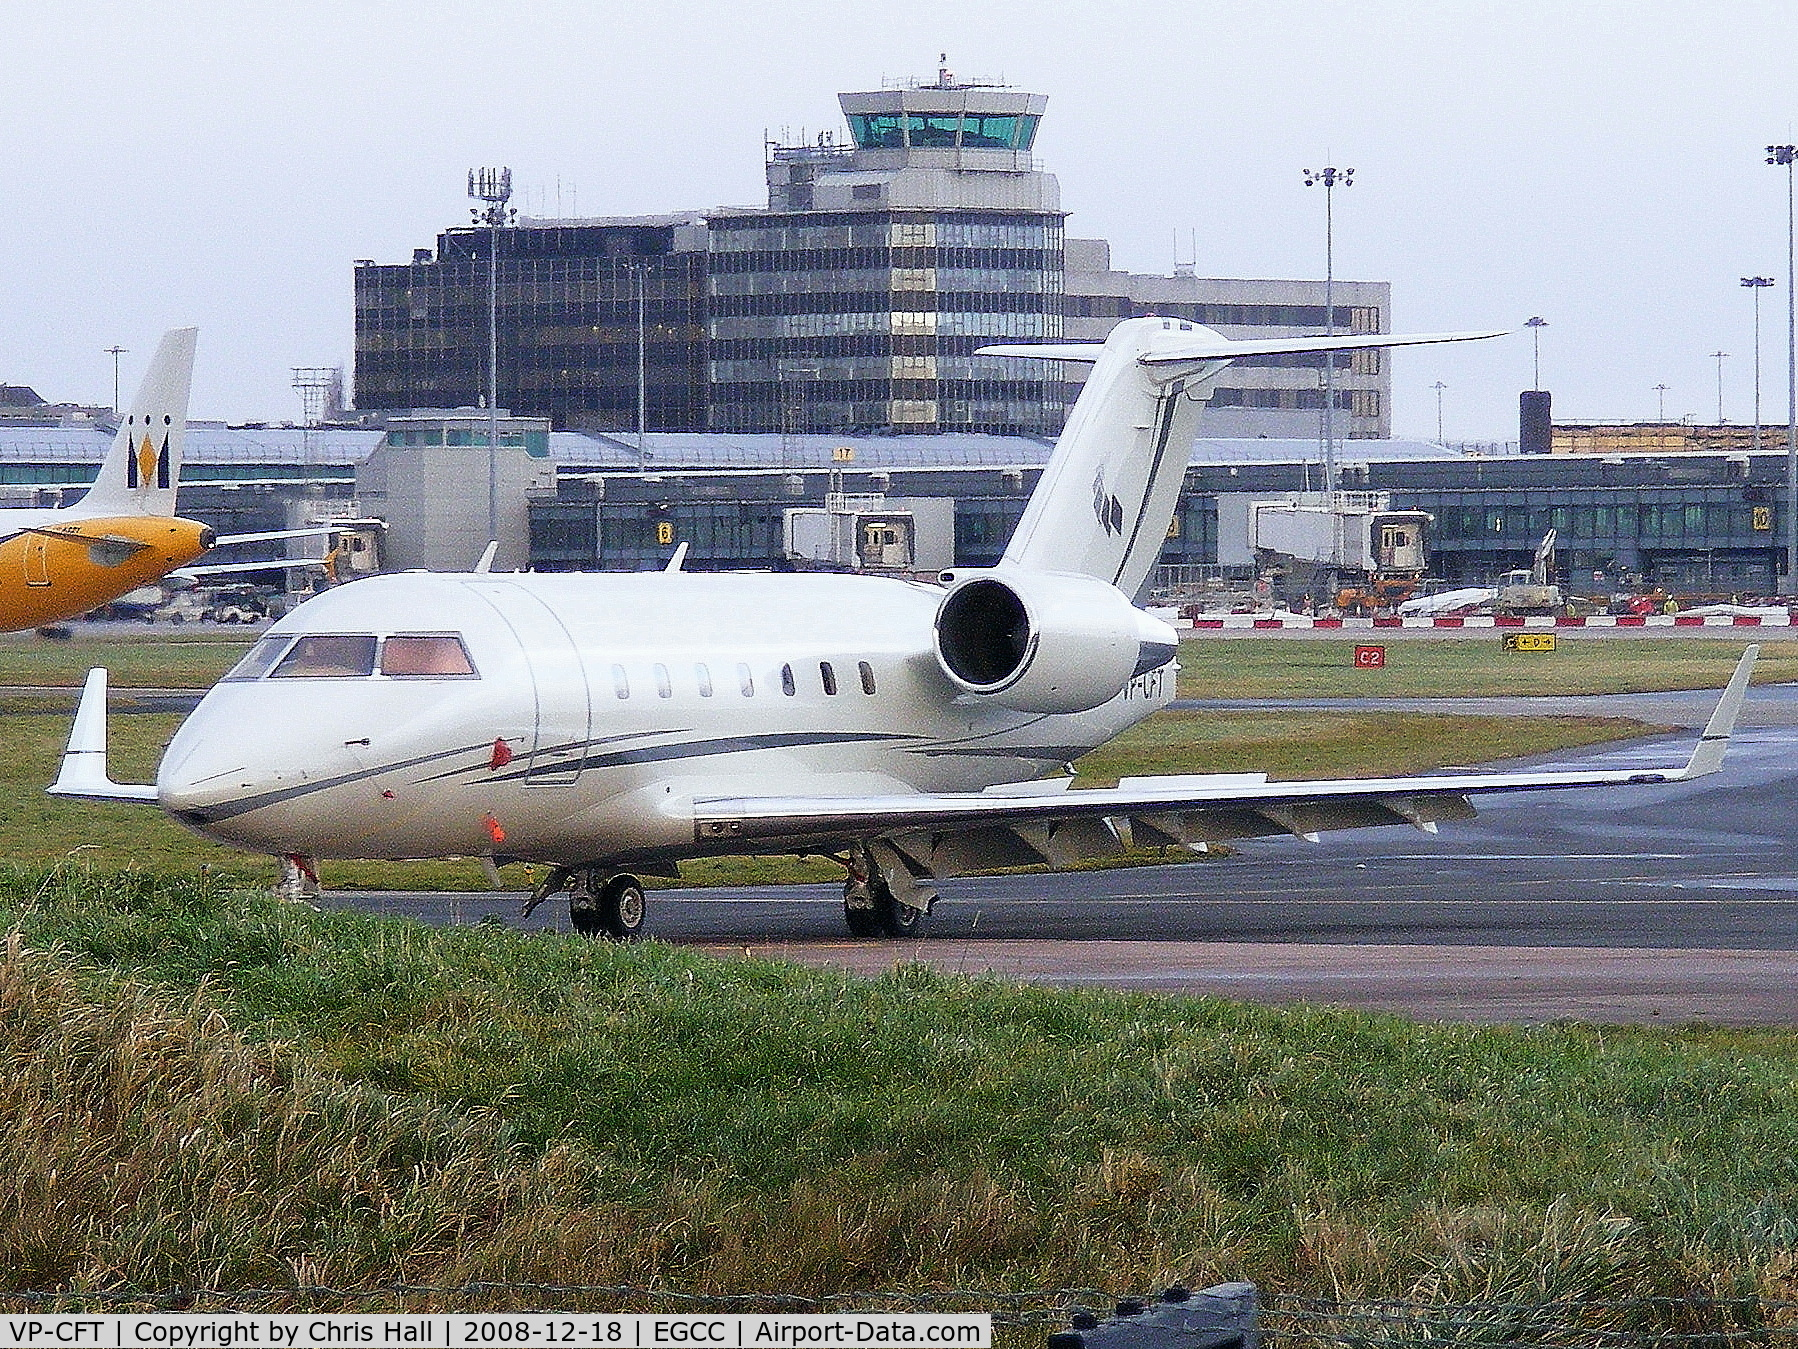 VP-CFT, 1990 Canadair Challenger 601-3A (CL-600-2B16) C/N 5067, Meral Holdings